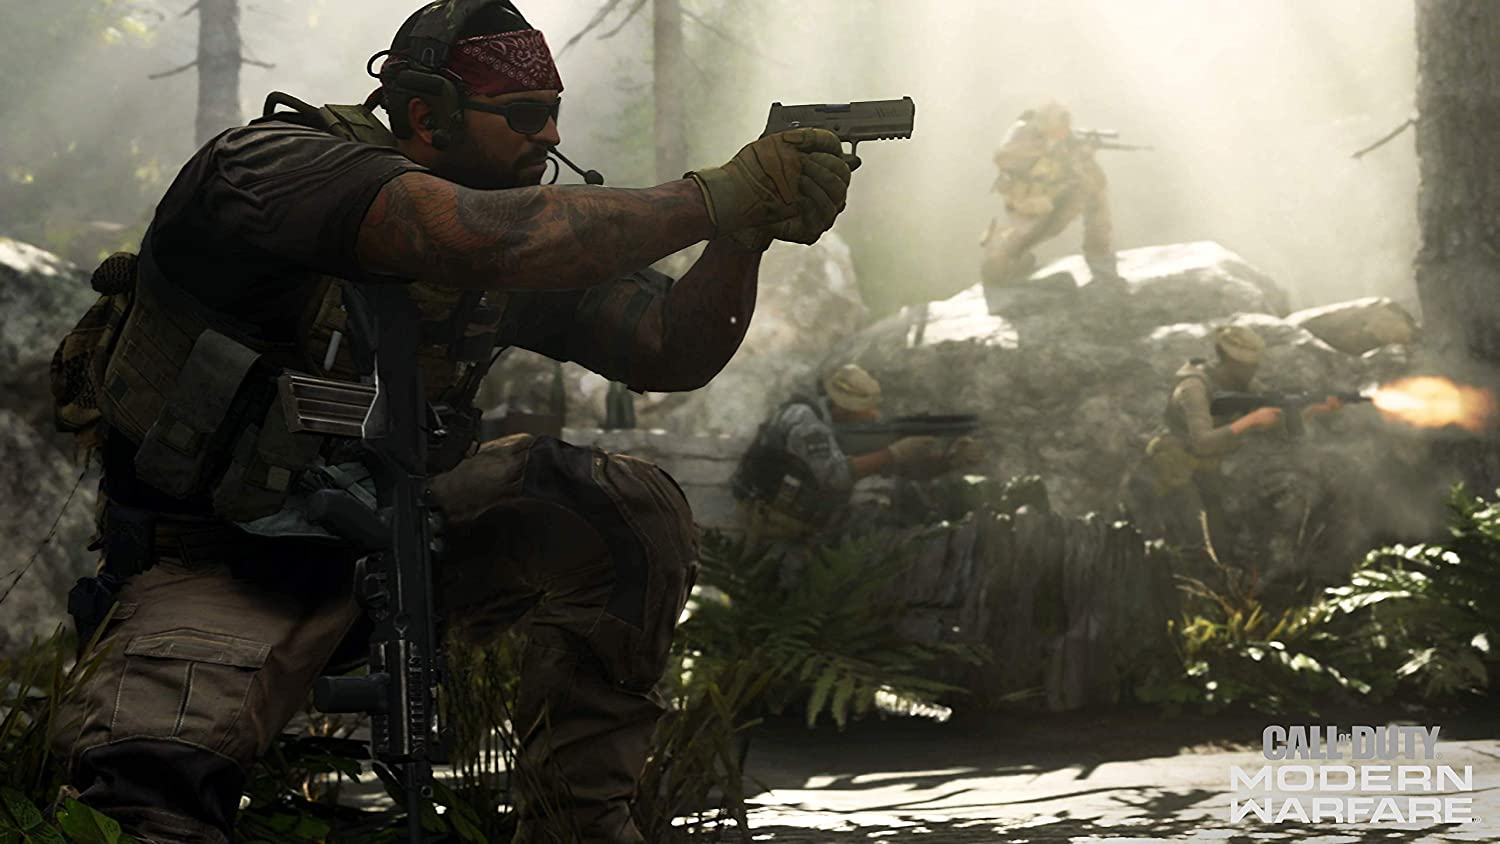 Activision calls Call of Duty 'exceptional' in third quarterly report